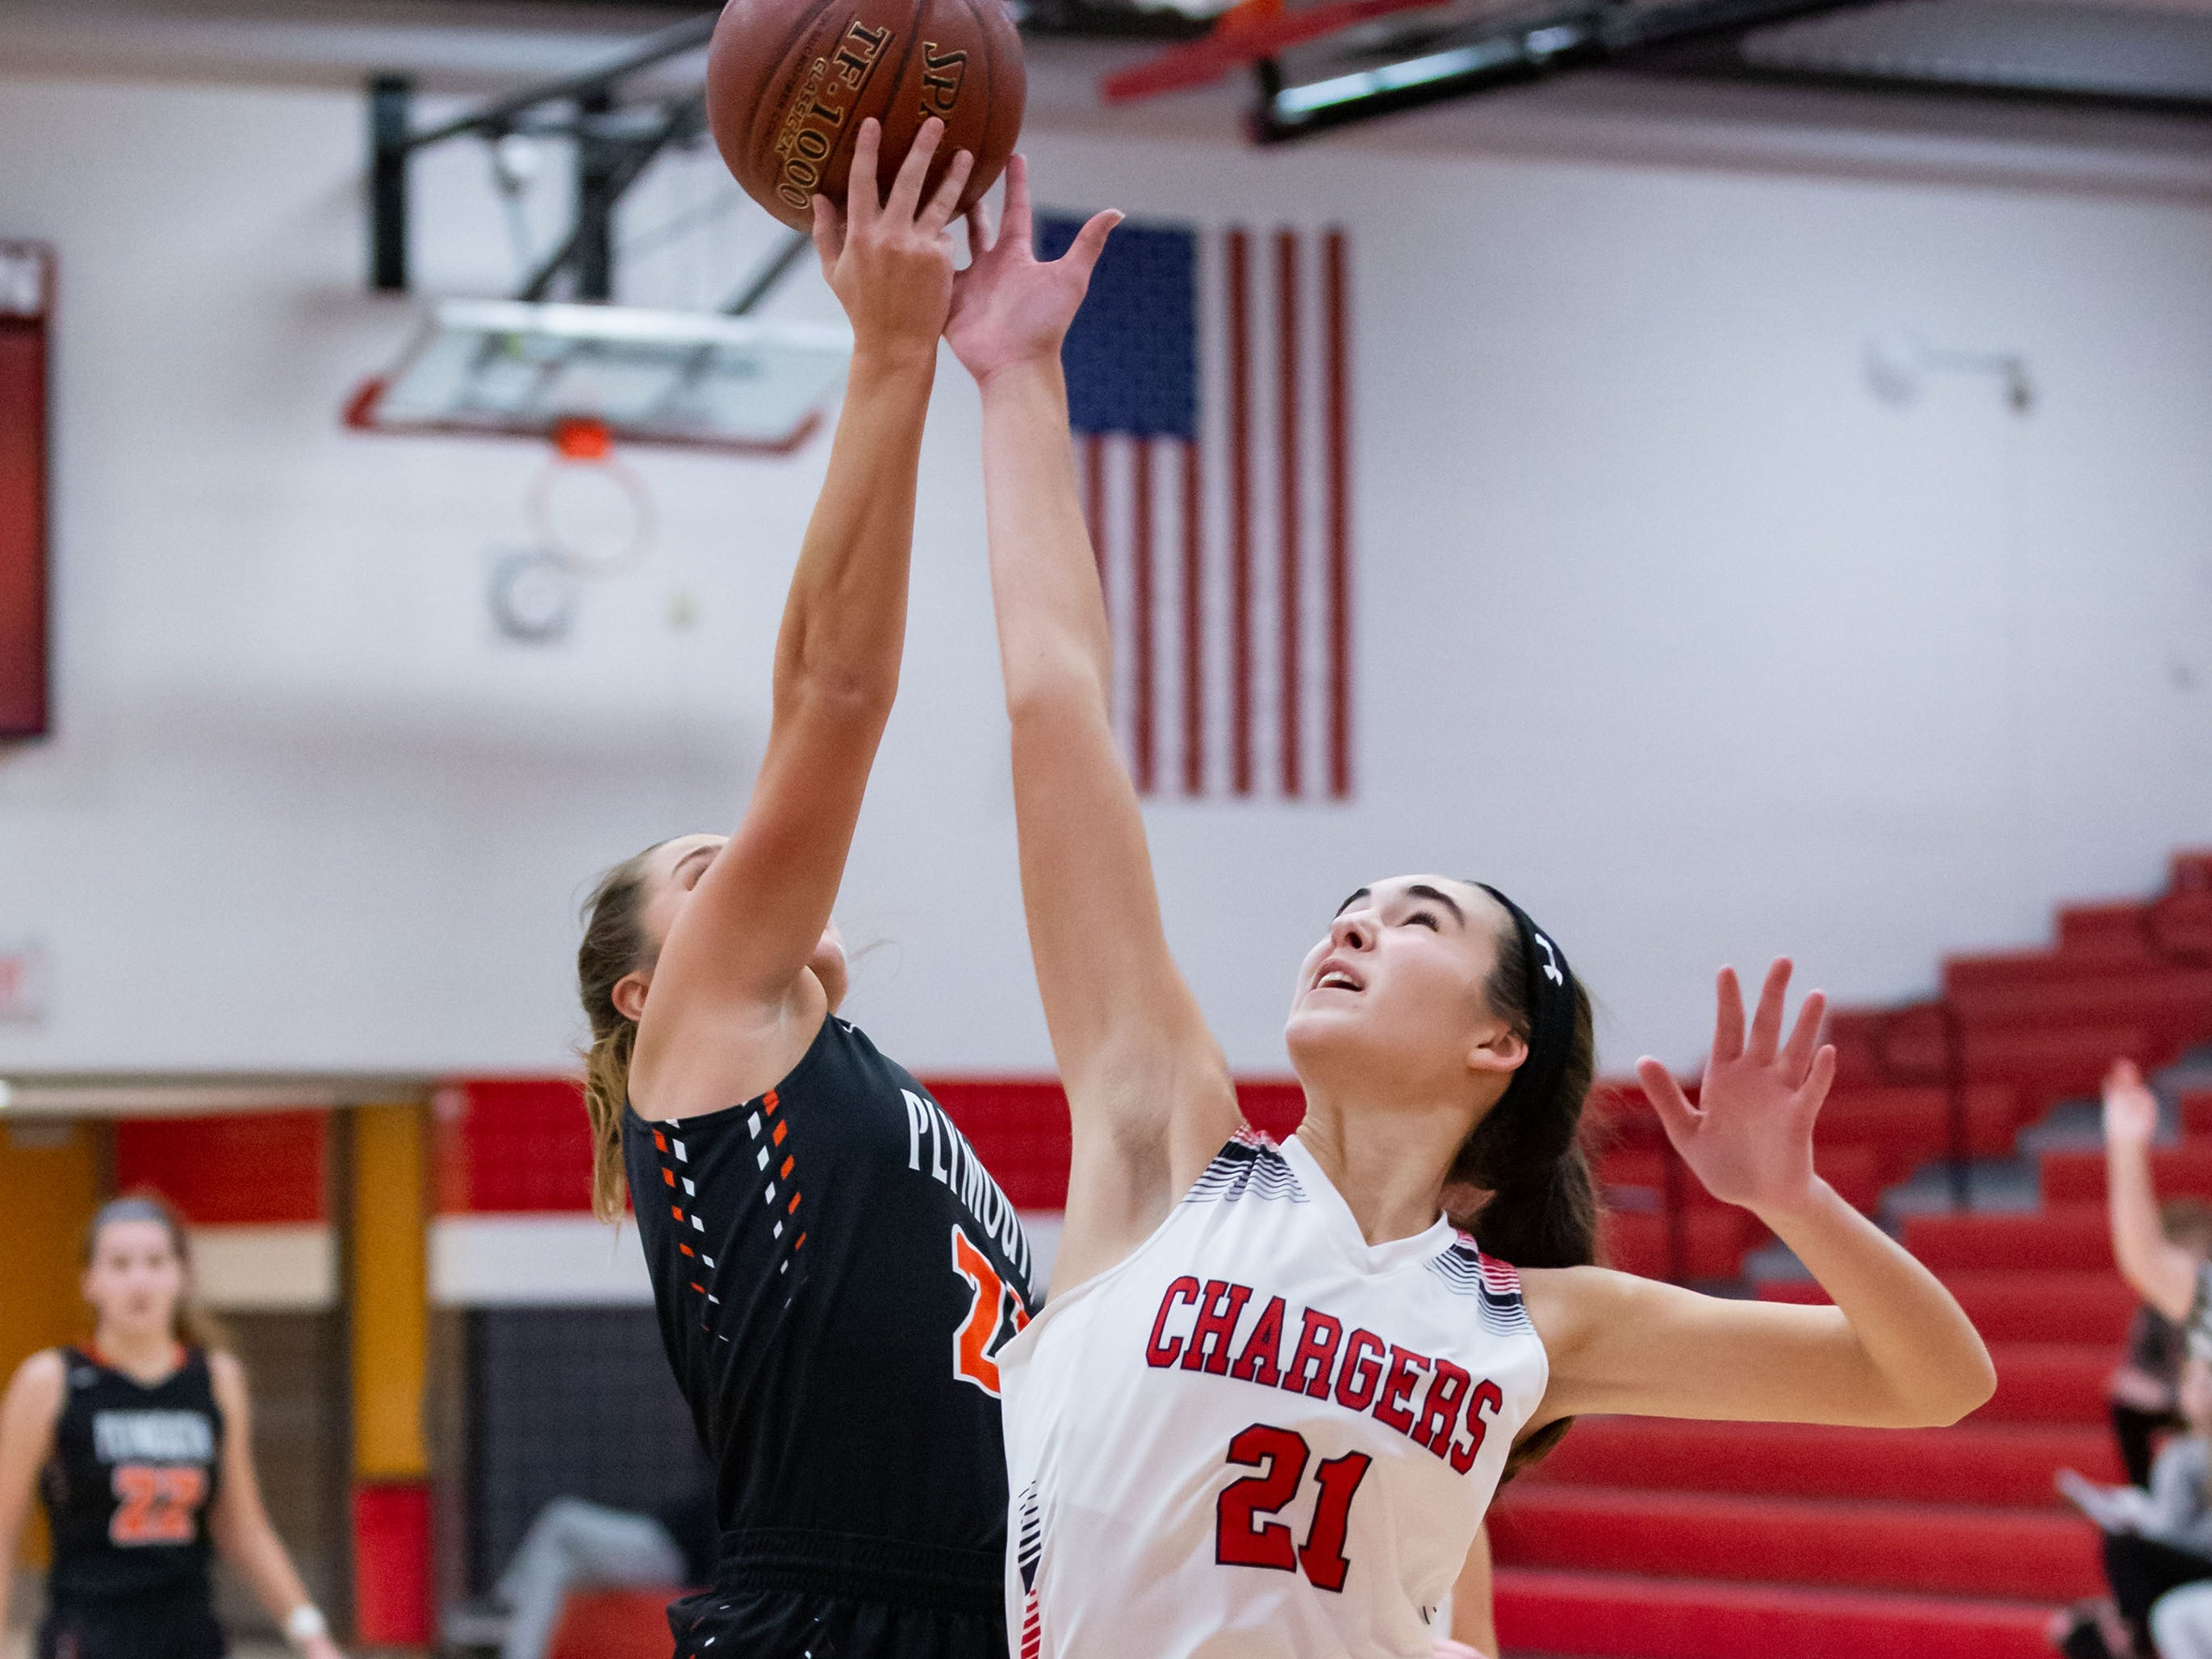 Hamilton senior Julia Nolde (right) steals a rebound from Plymouth's Gabi Mella during the game at Hamilton on Tuesday, Dec. 4, 2018.